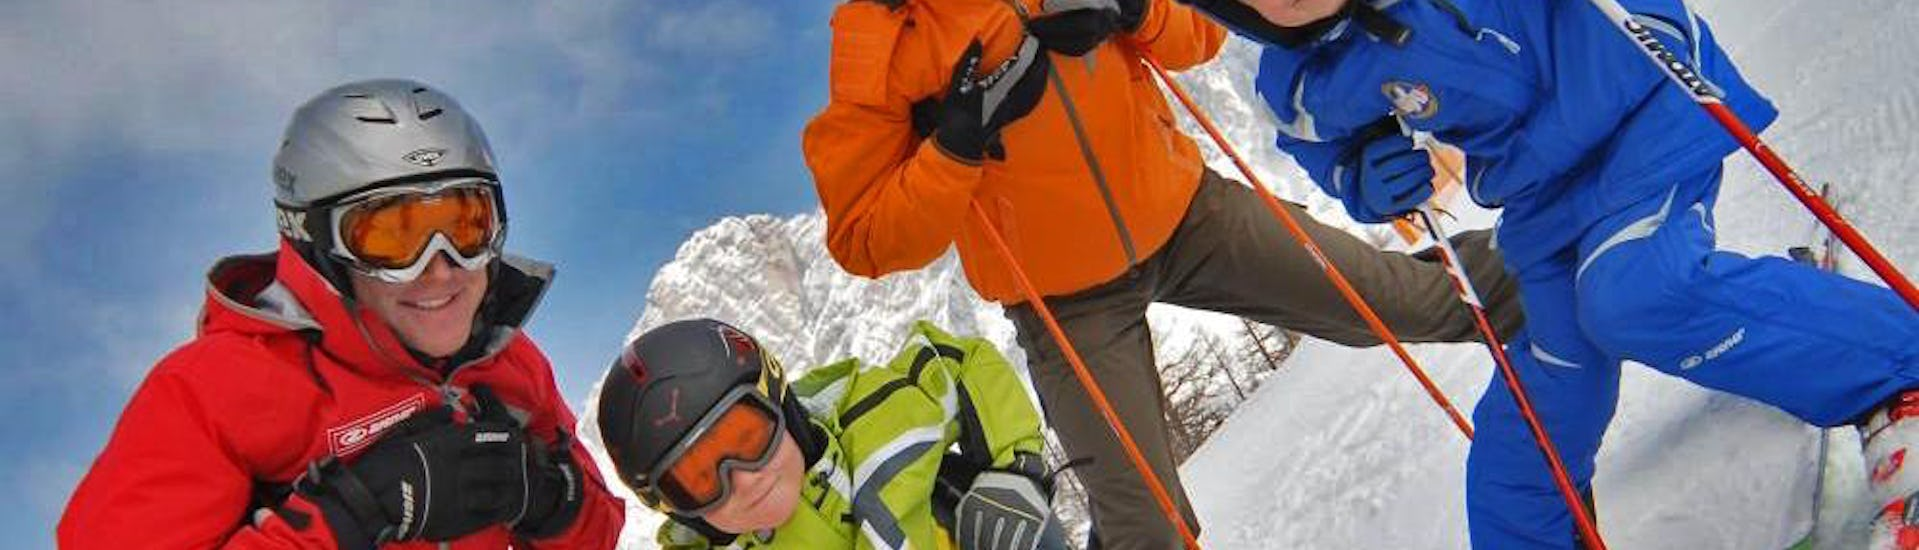 Ski Instructor Private for Groups - All Levels